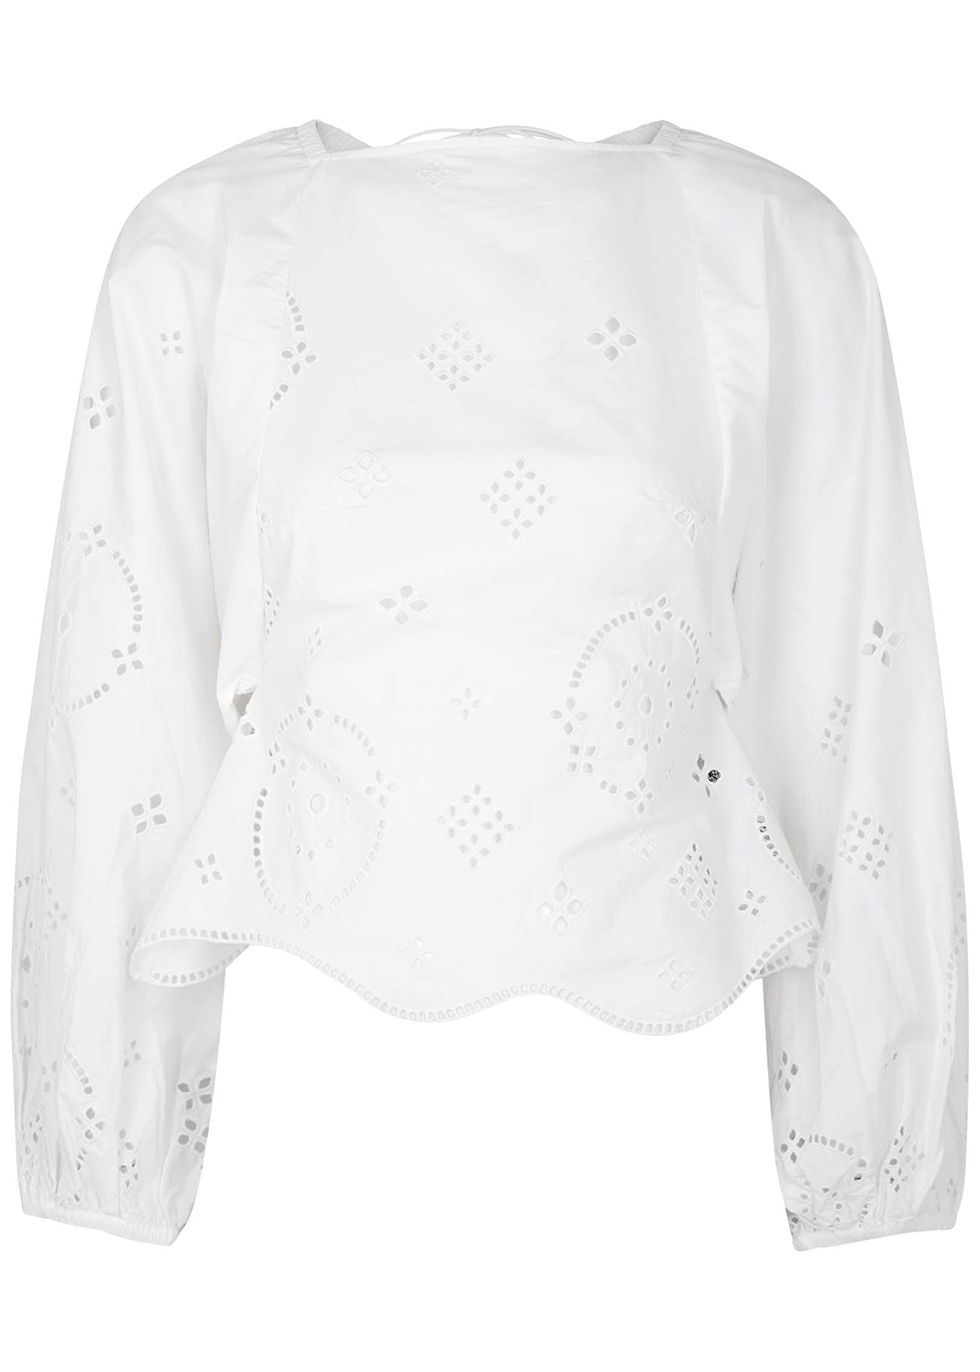 White broderie anglaise cotton top